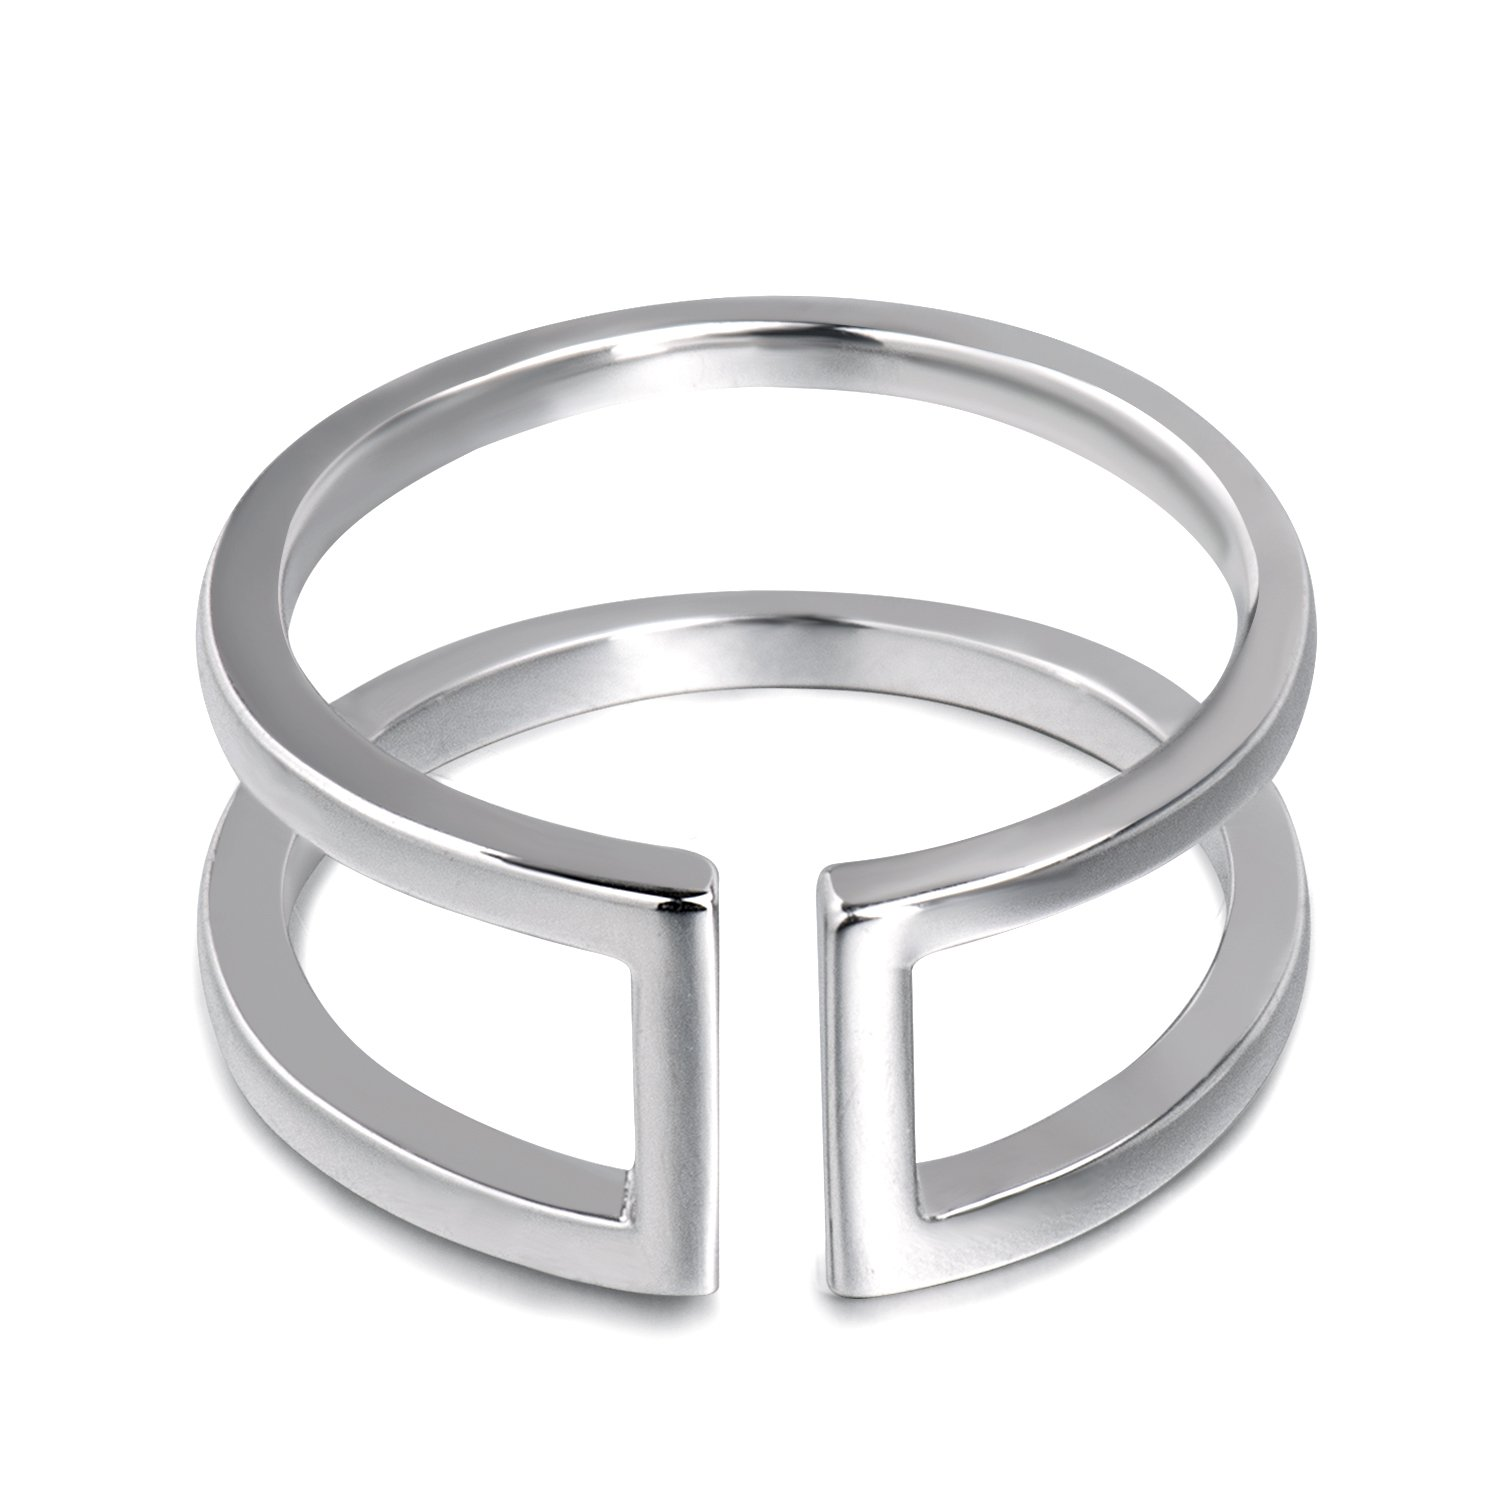 Fonsalette Open Circle Rings Geometric Rings Sterling Silver Double Bar Adjustable Parallel Bar Rings for Women